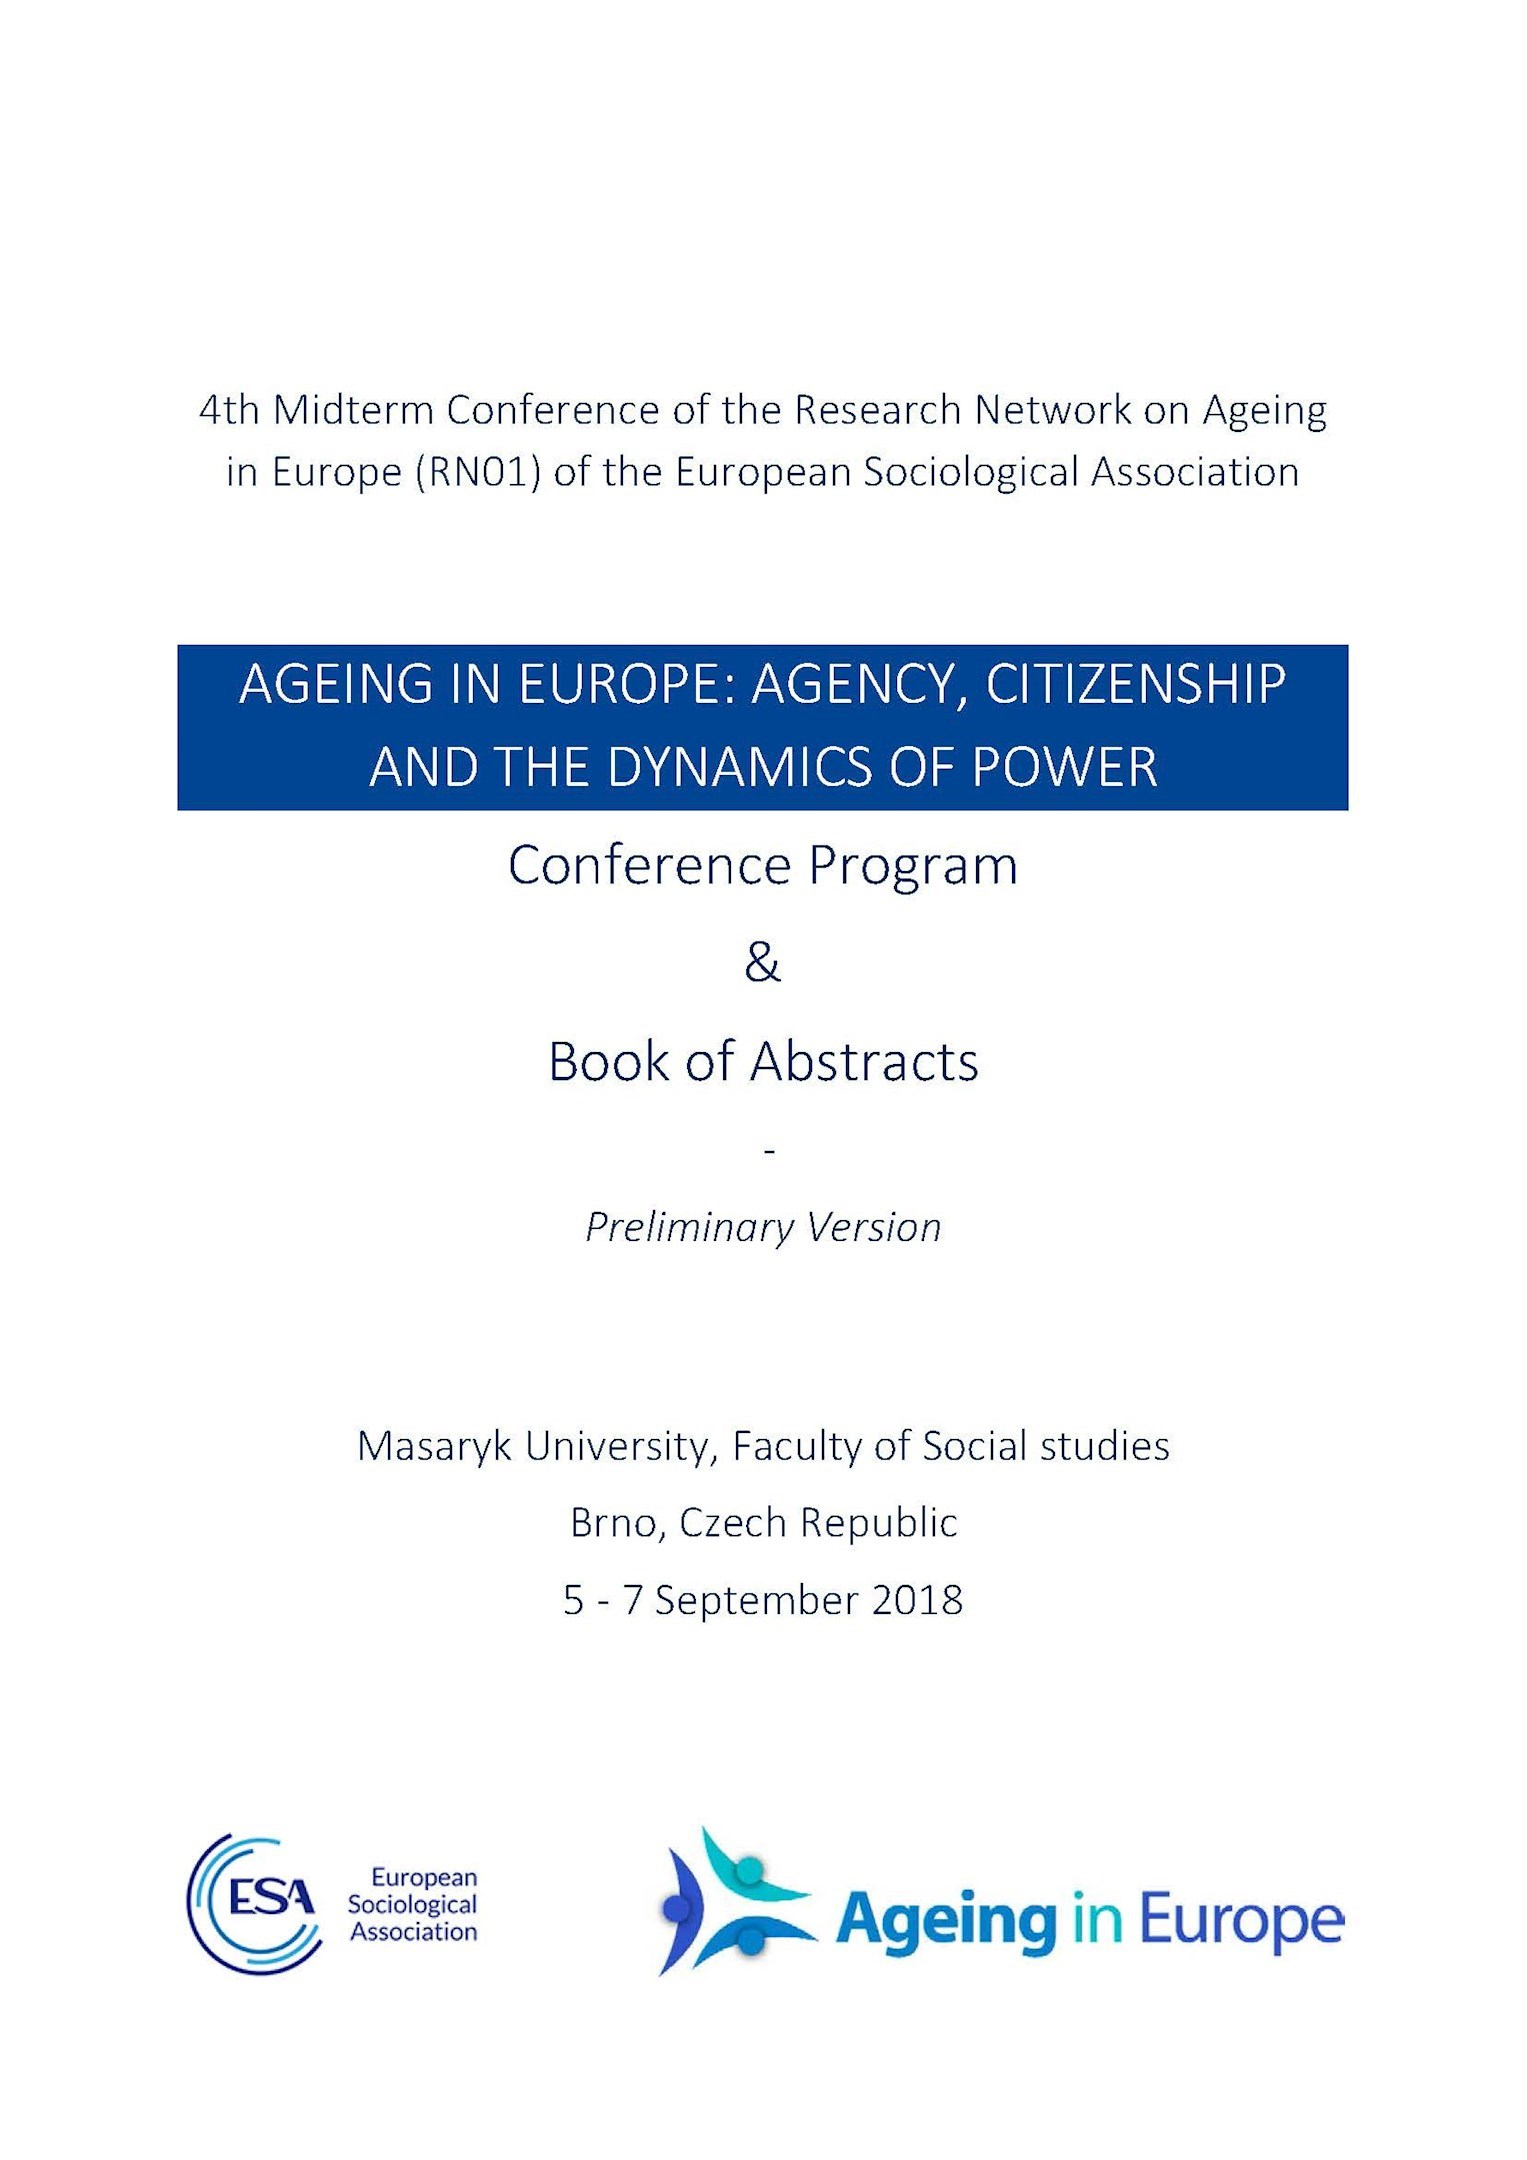 Conference Program & Book of Abstracts